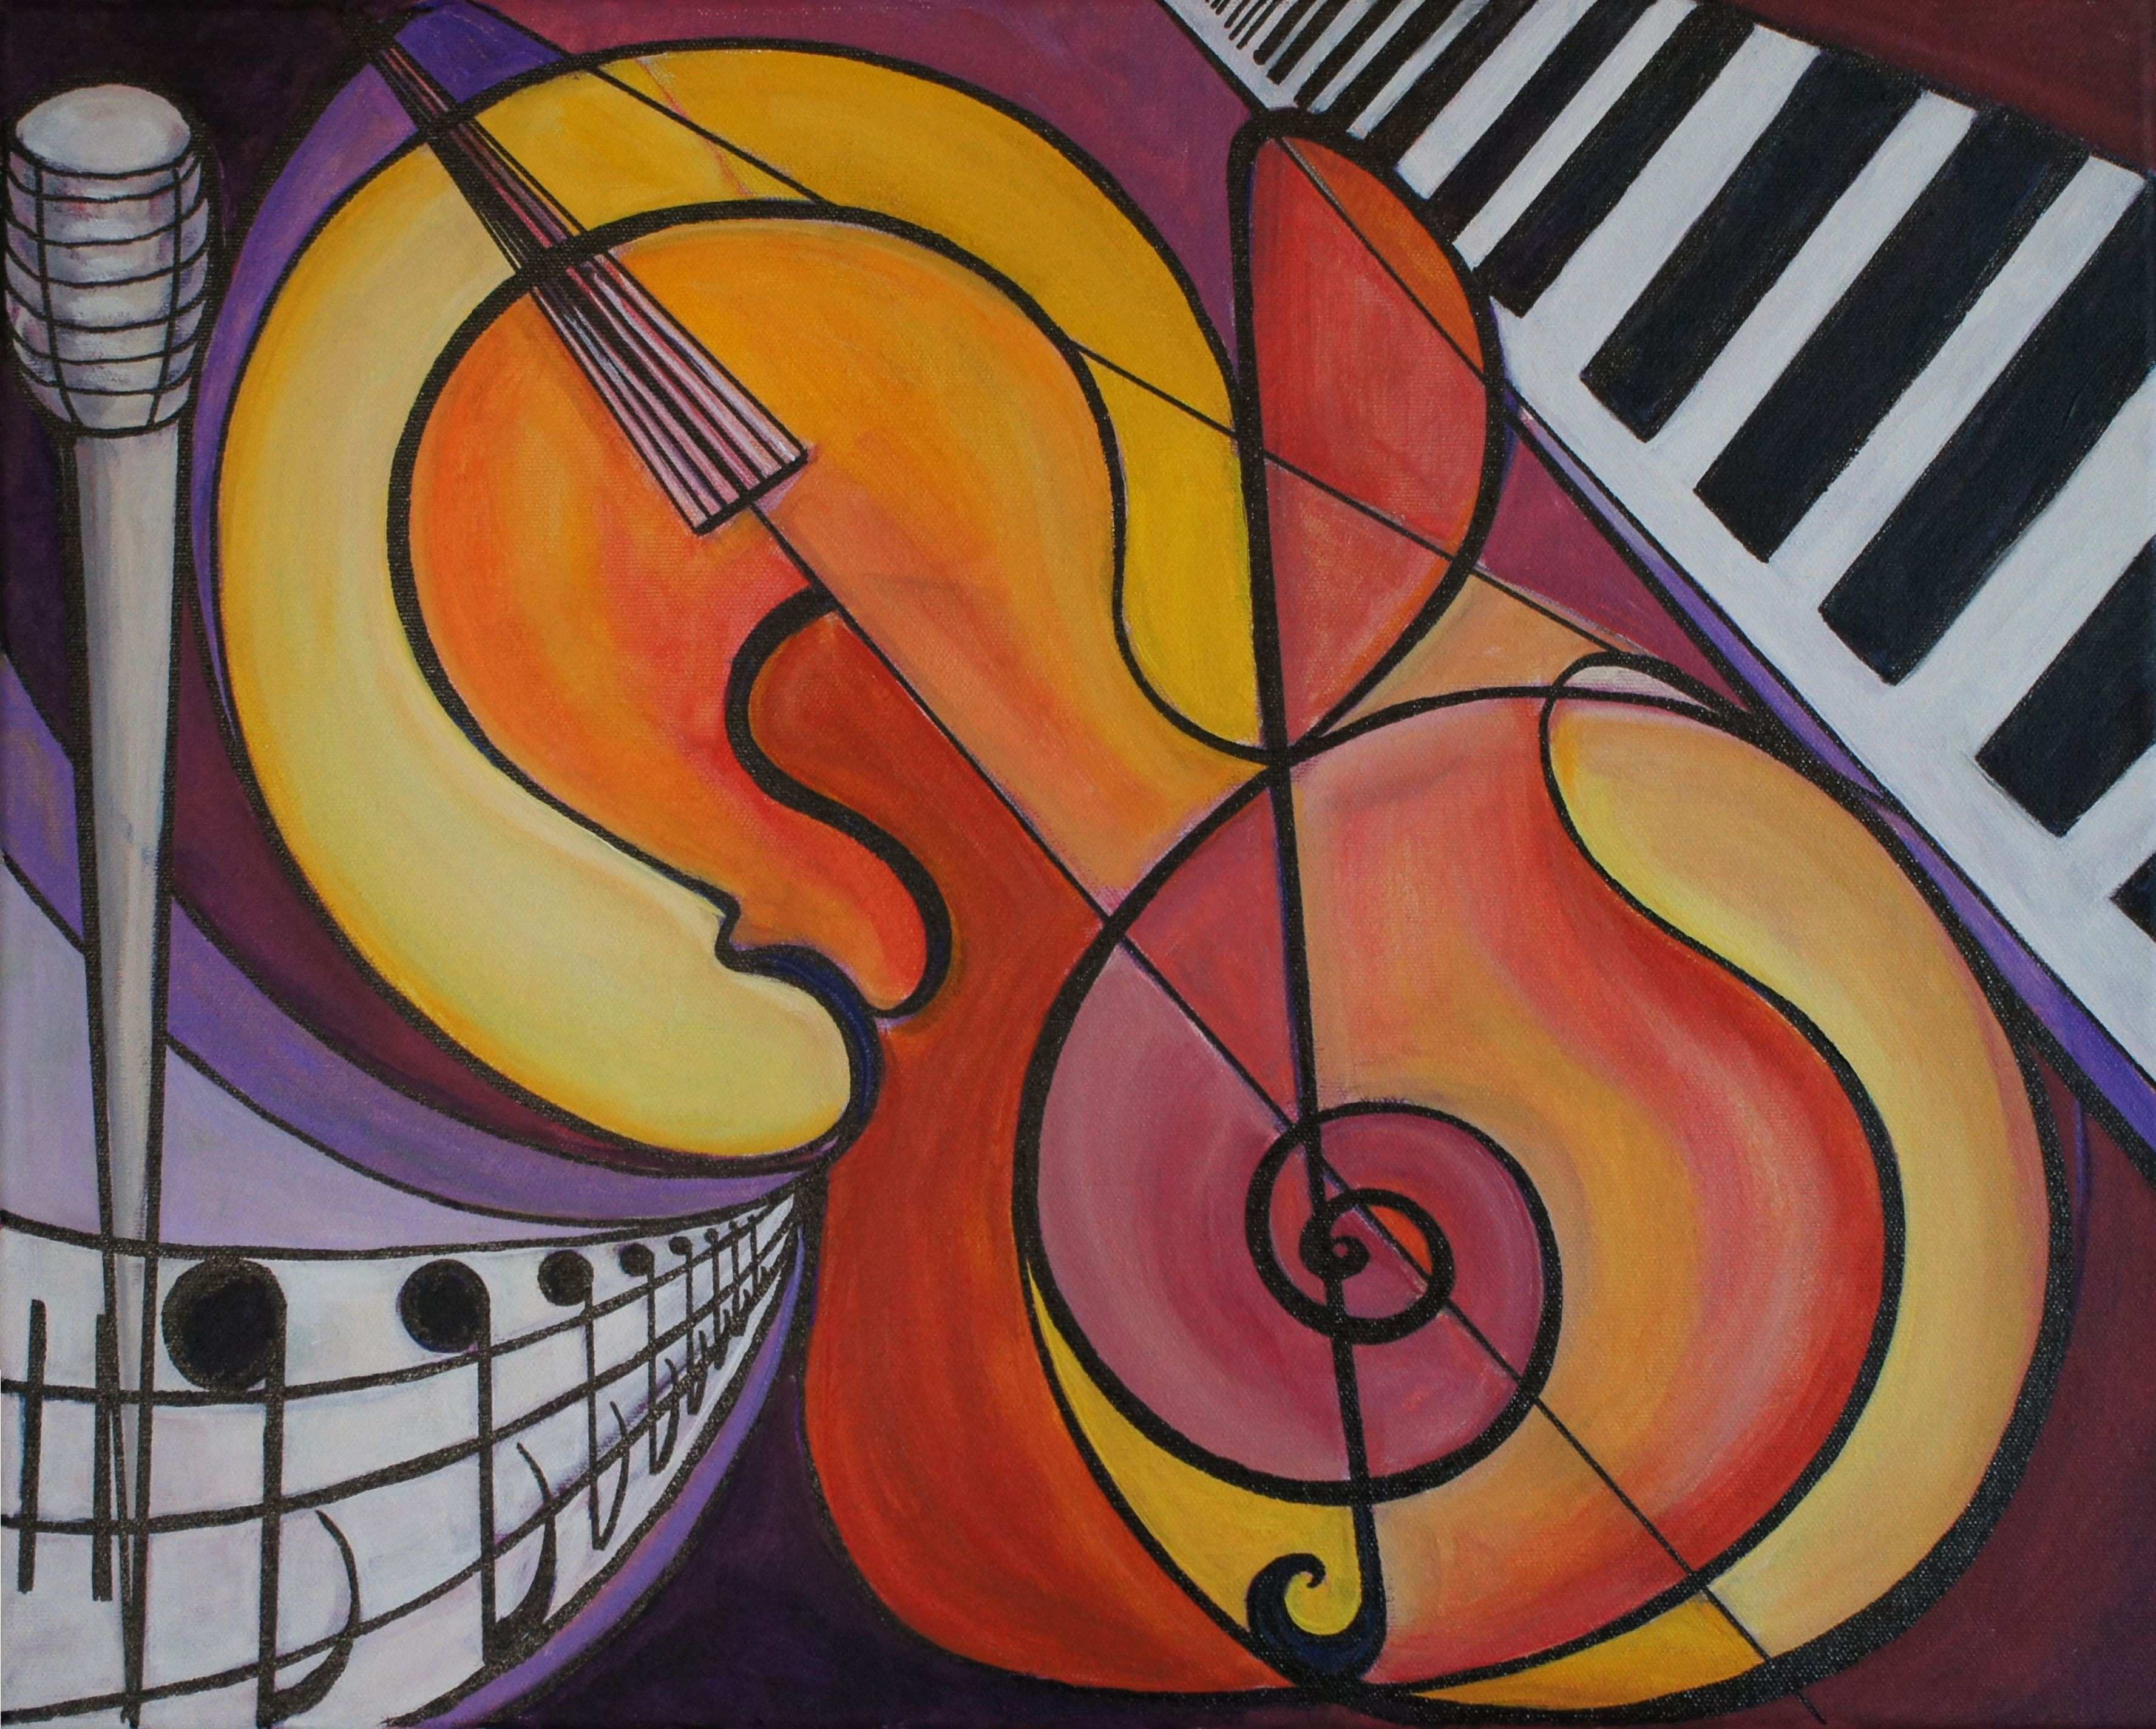 For Sale Fine Art of Music Acrylic on Wrapped Canvas by Shoushan